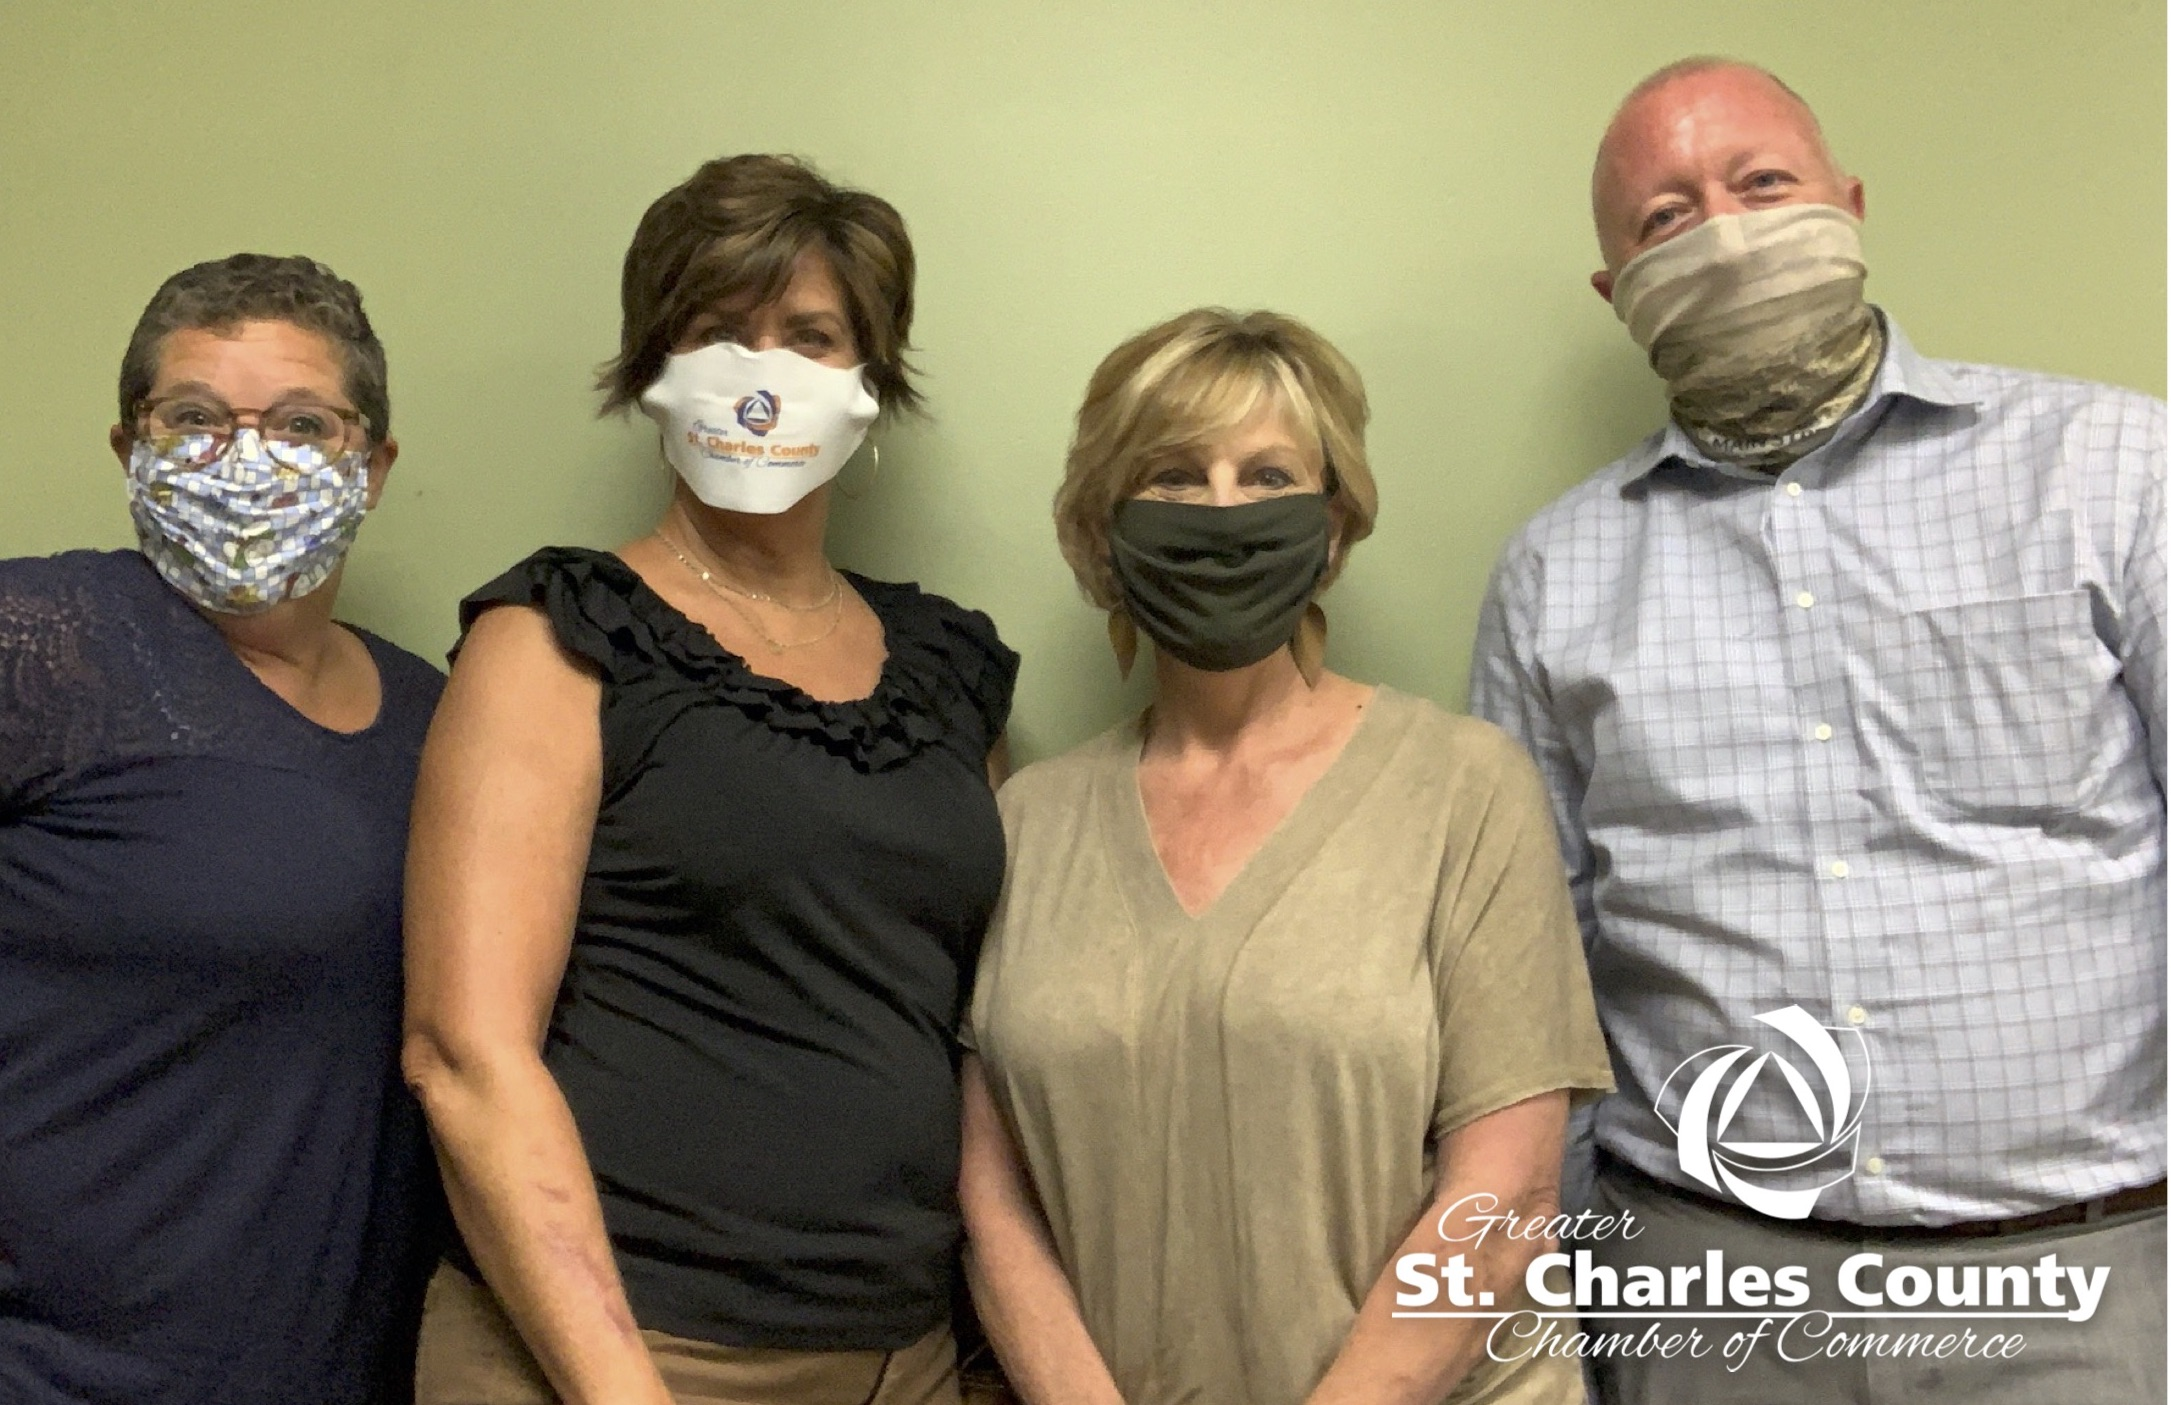 Chamber statement asks businesses & community members to follow CDC guidelines on mask wearing to aid in the health  of the economy